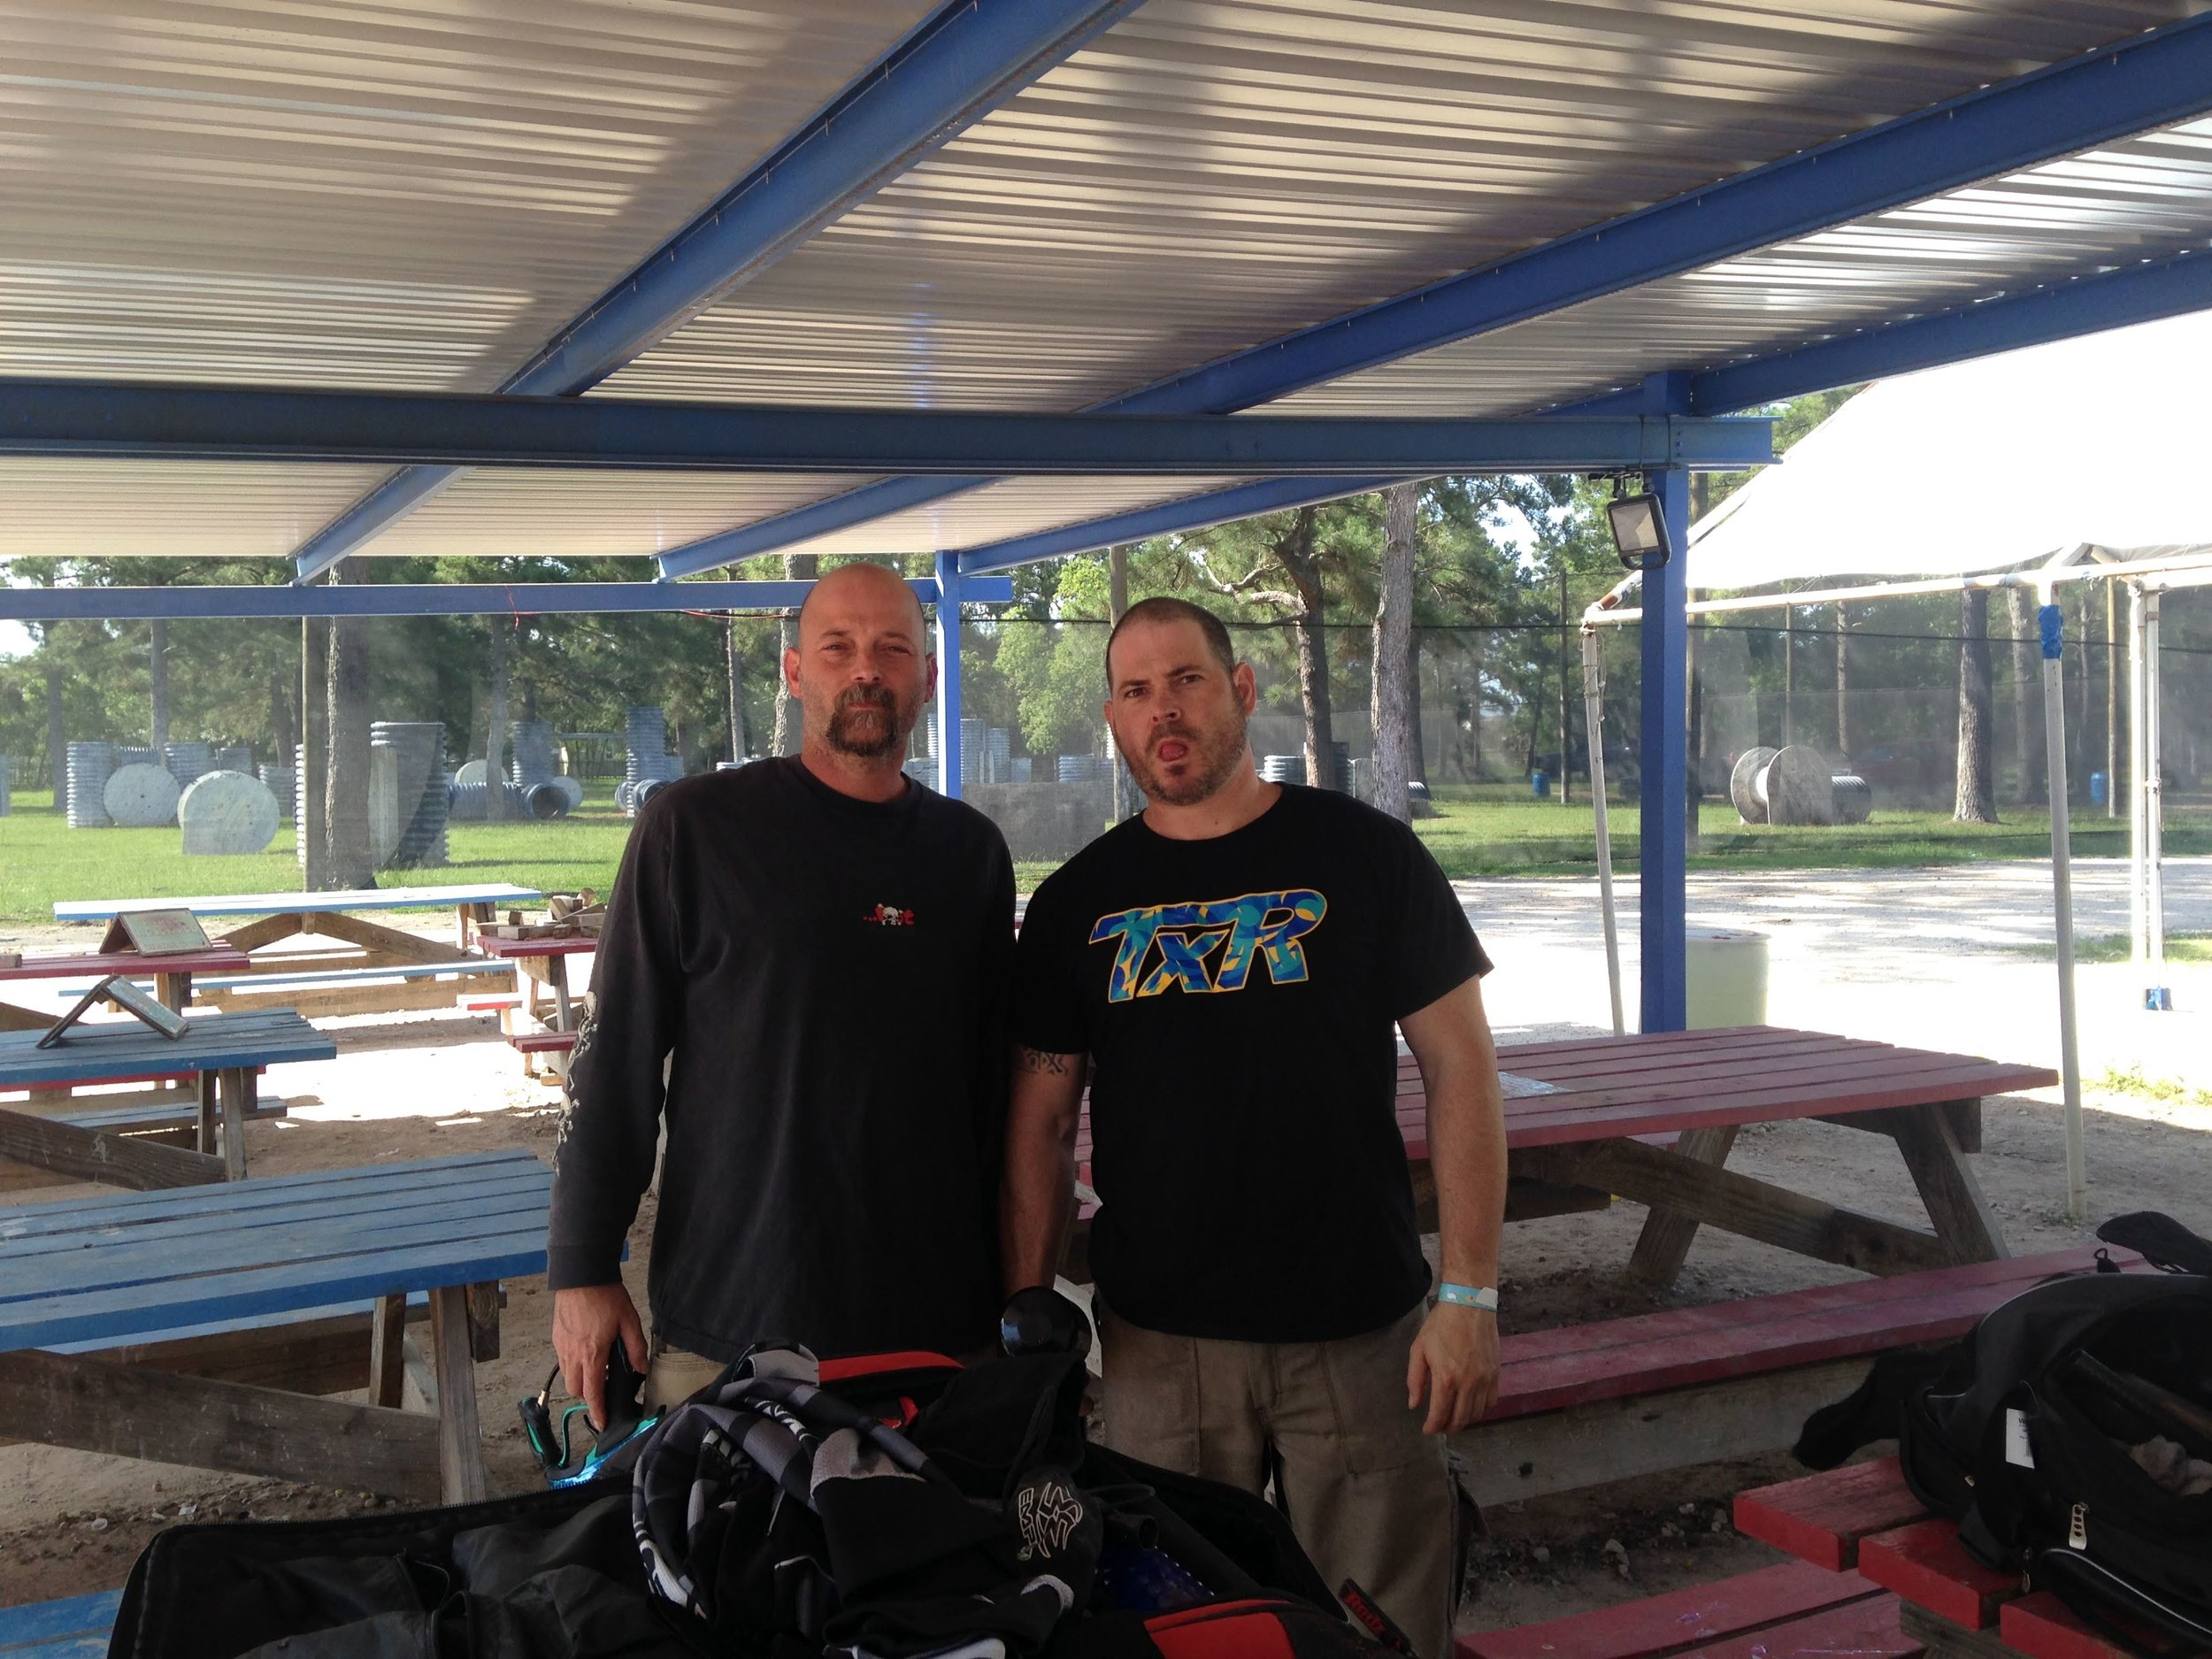 Brandon and his brother Damian have a lot of fun playing paintball.